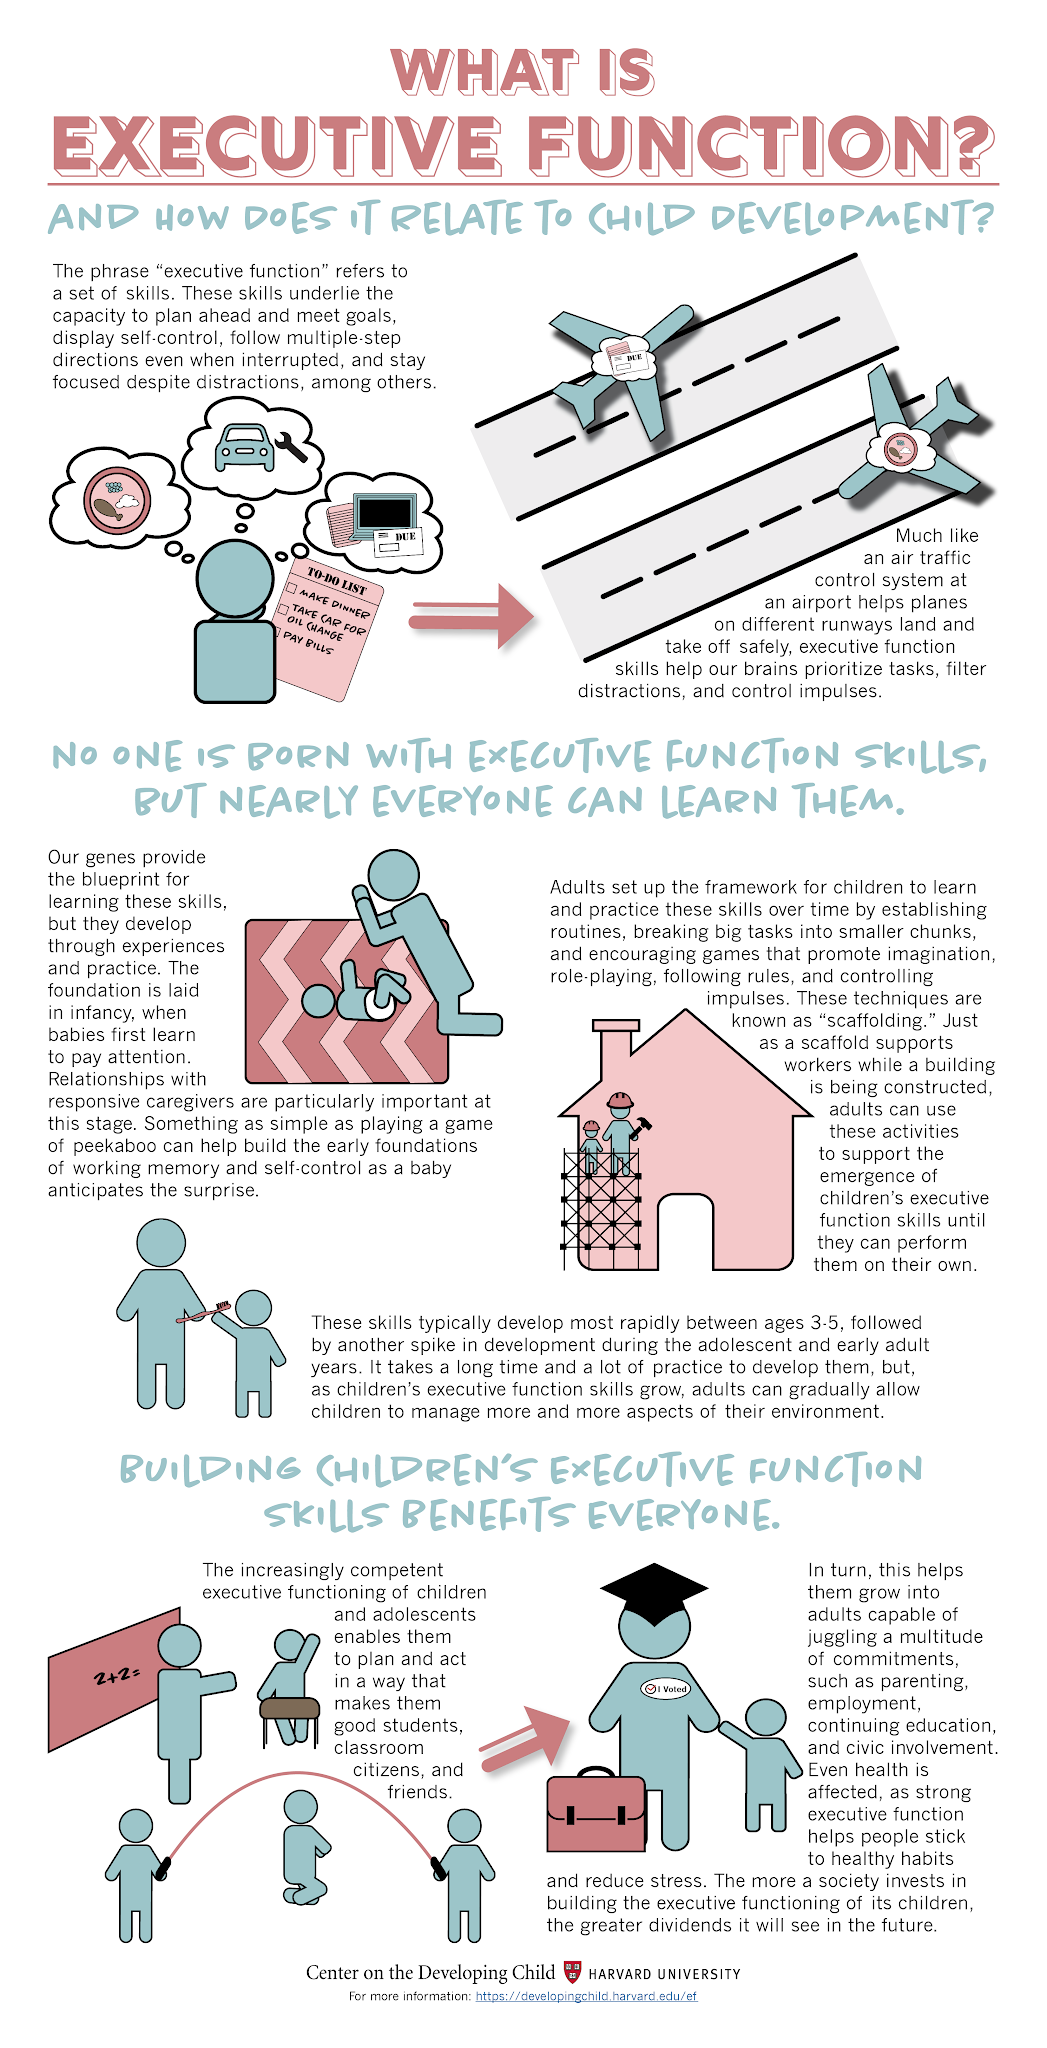 What Is Executive Function? And How Does It Relate to Child Development? #infographic  #Learning #Child Development #Children